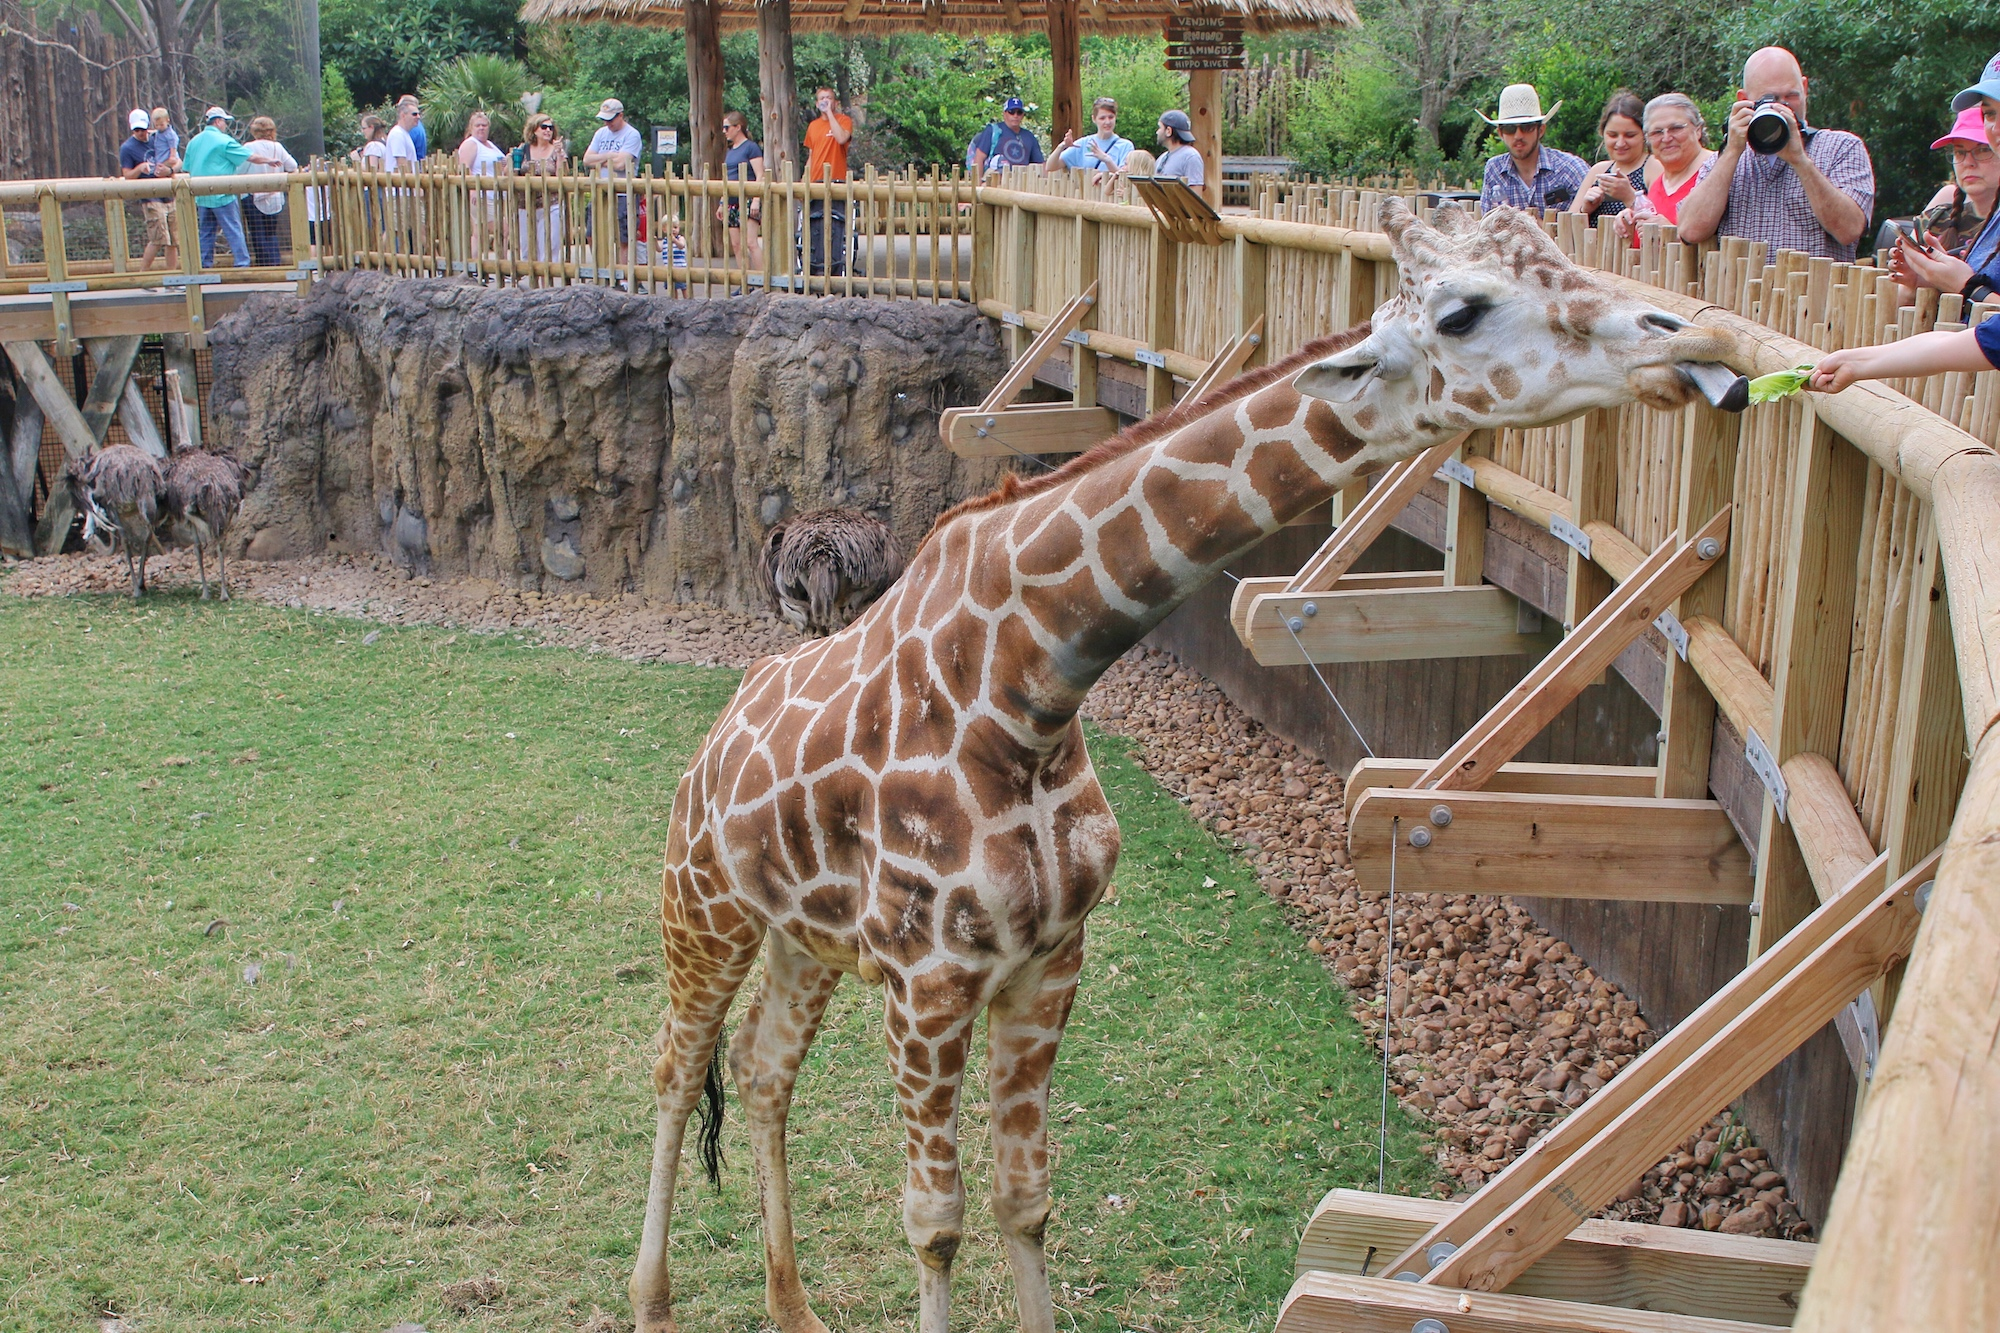 hand feed a giraffe at Fort Worth zoo